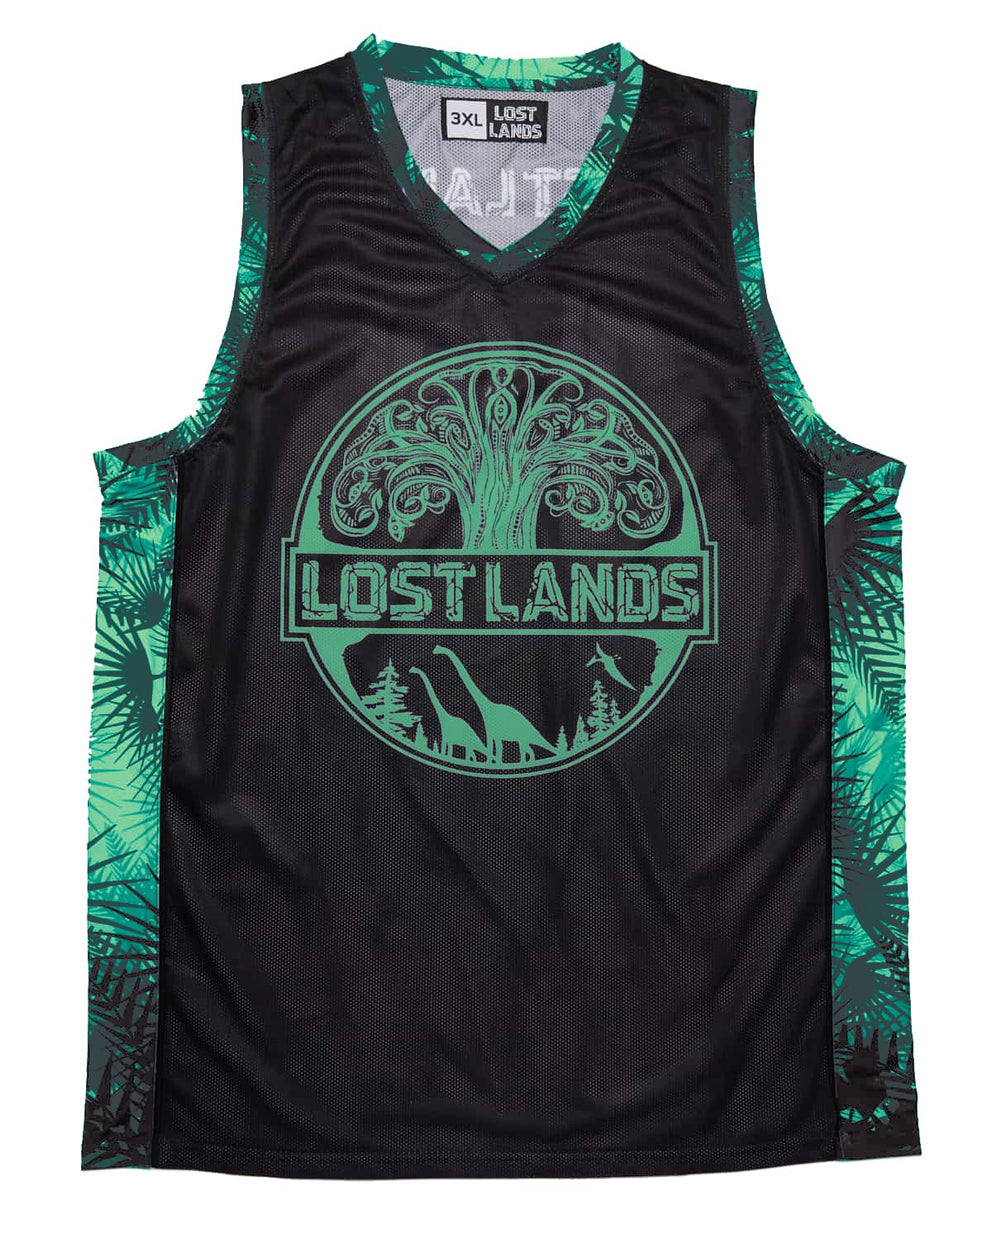 Lost Lands 'Foliage' Basketball Jersey - Black/Green